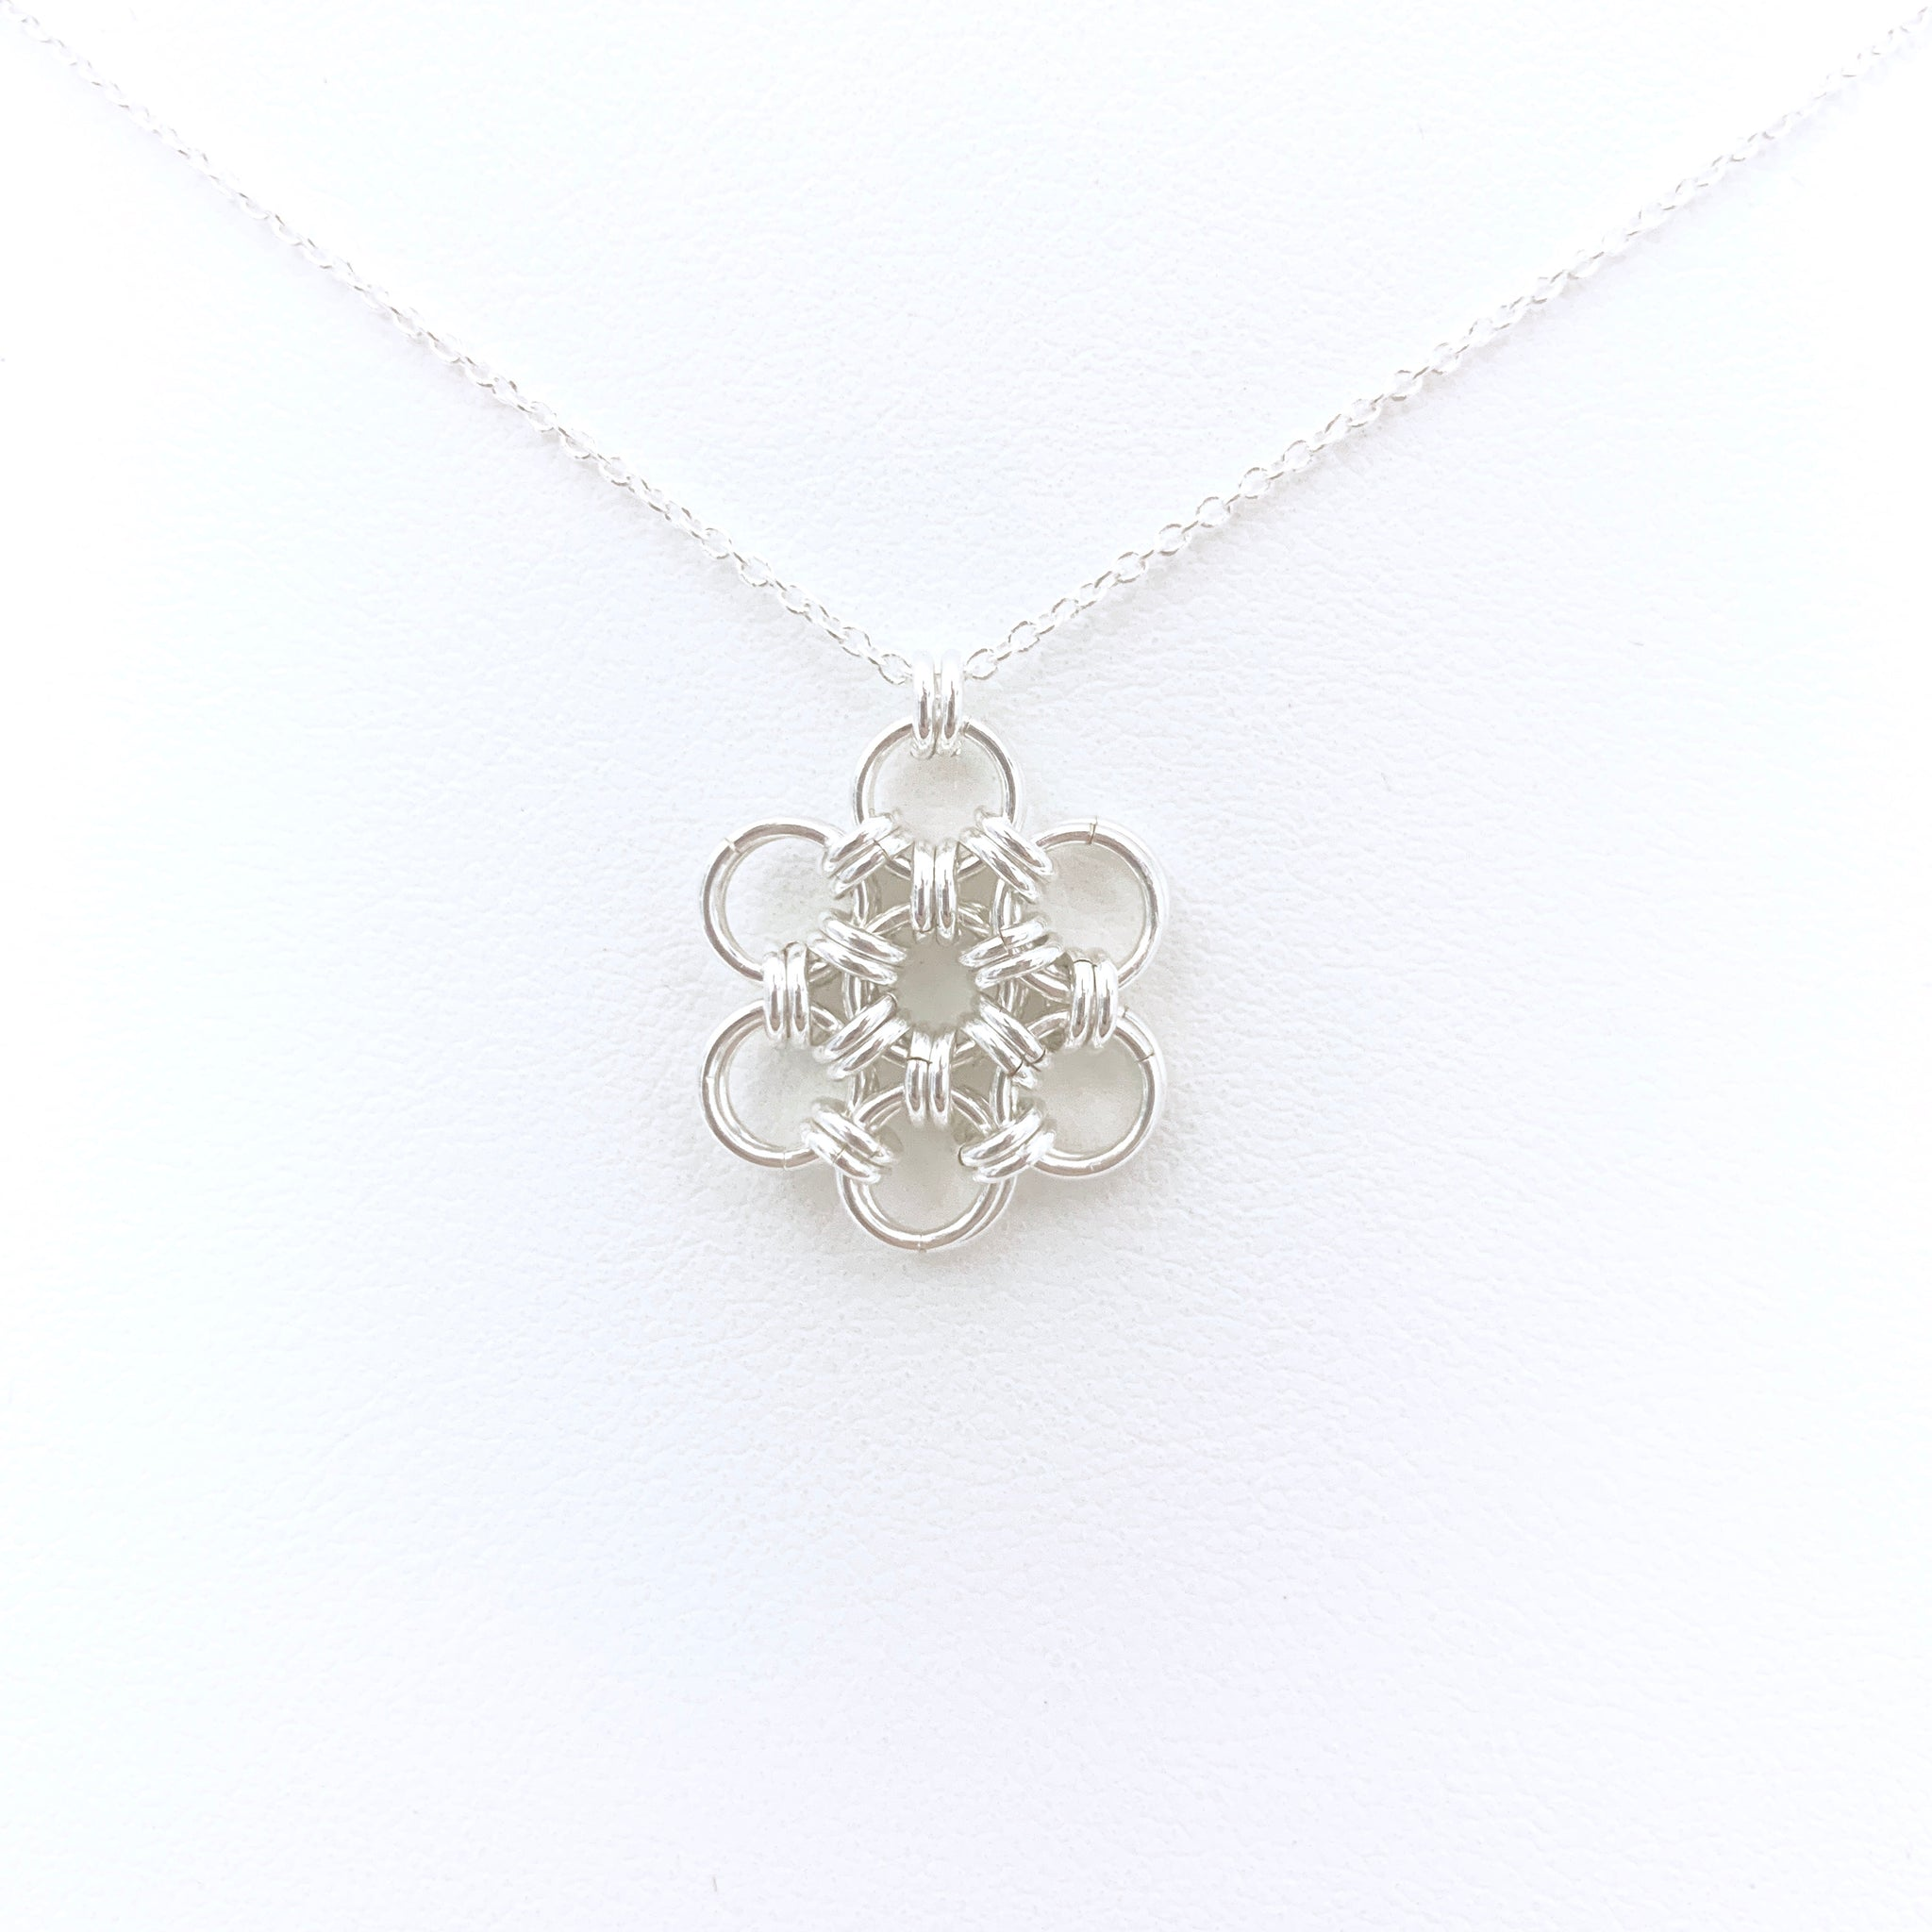 'Rose' Silver pendant necklace